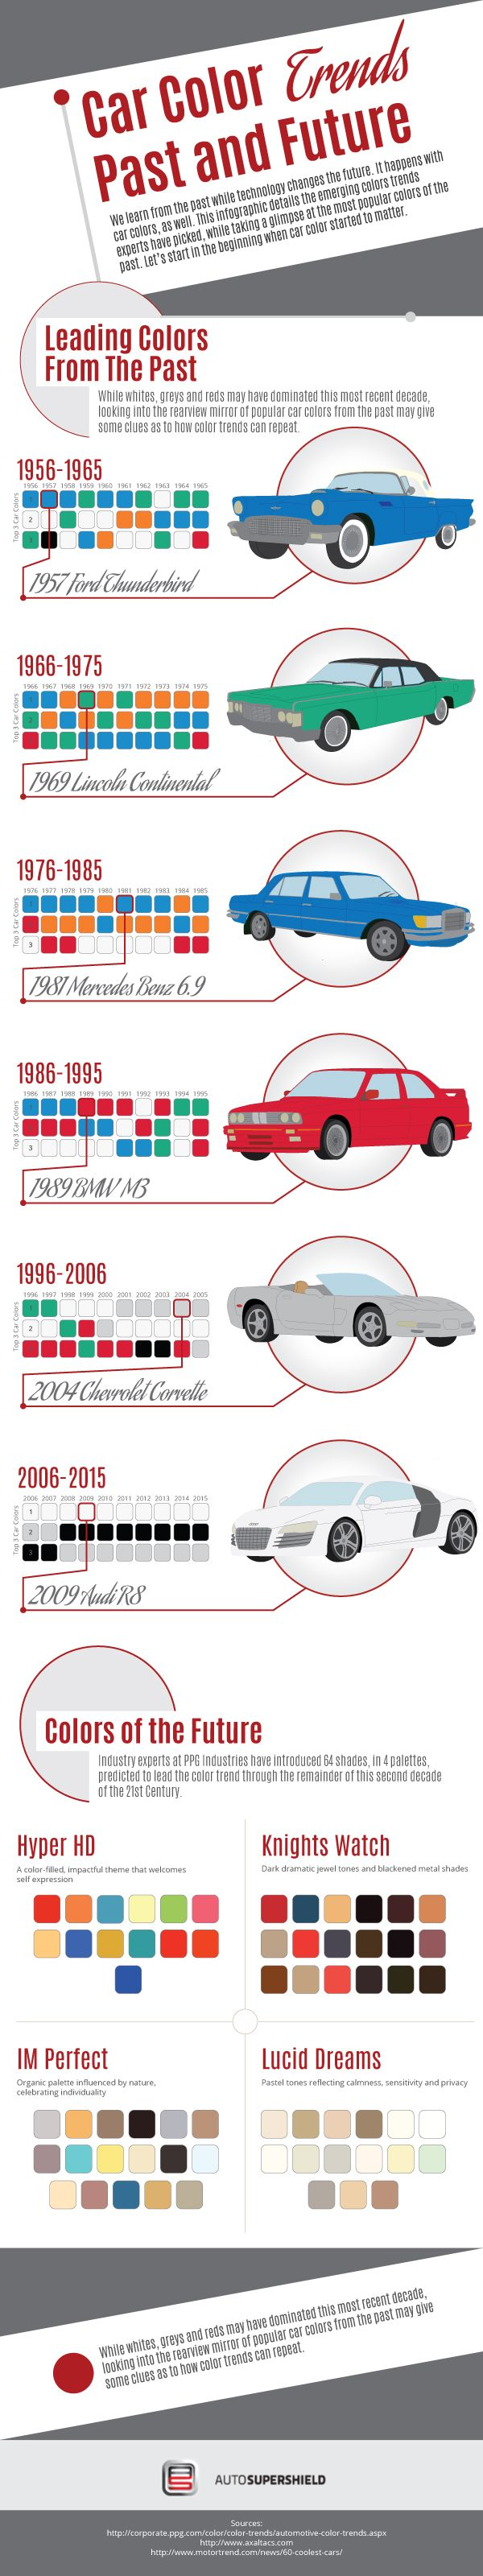 Car Color Trends – Past and Future #Infographic #Cars #Transportation